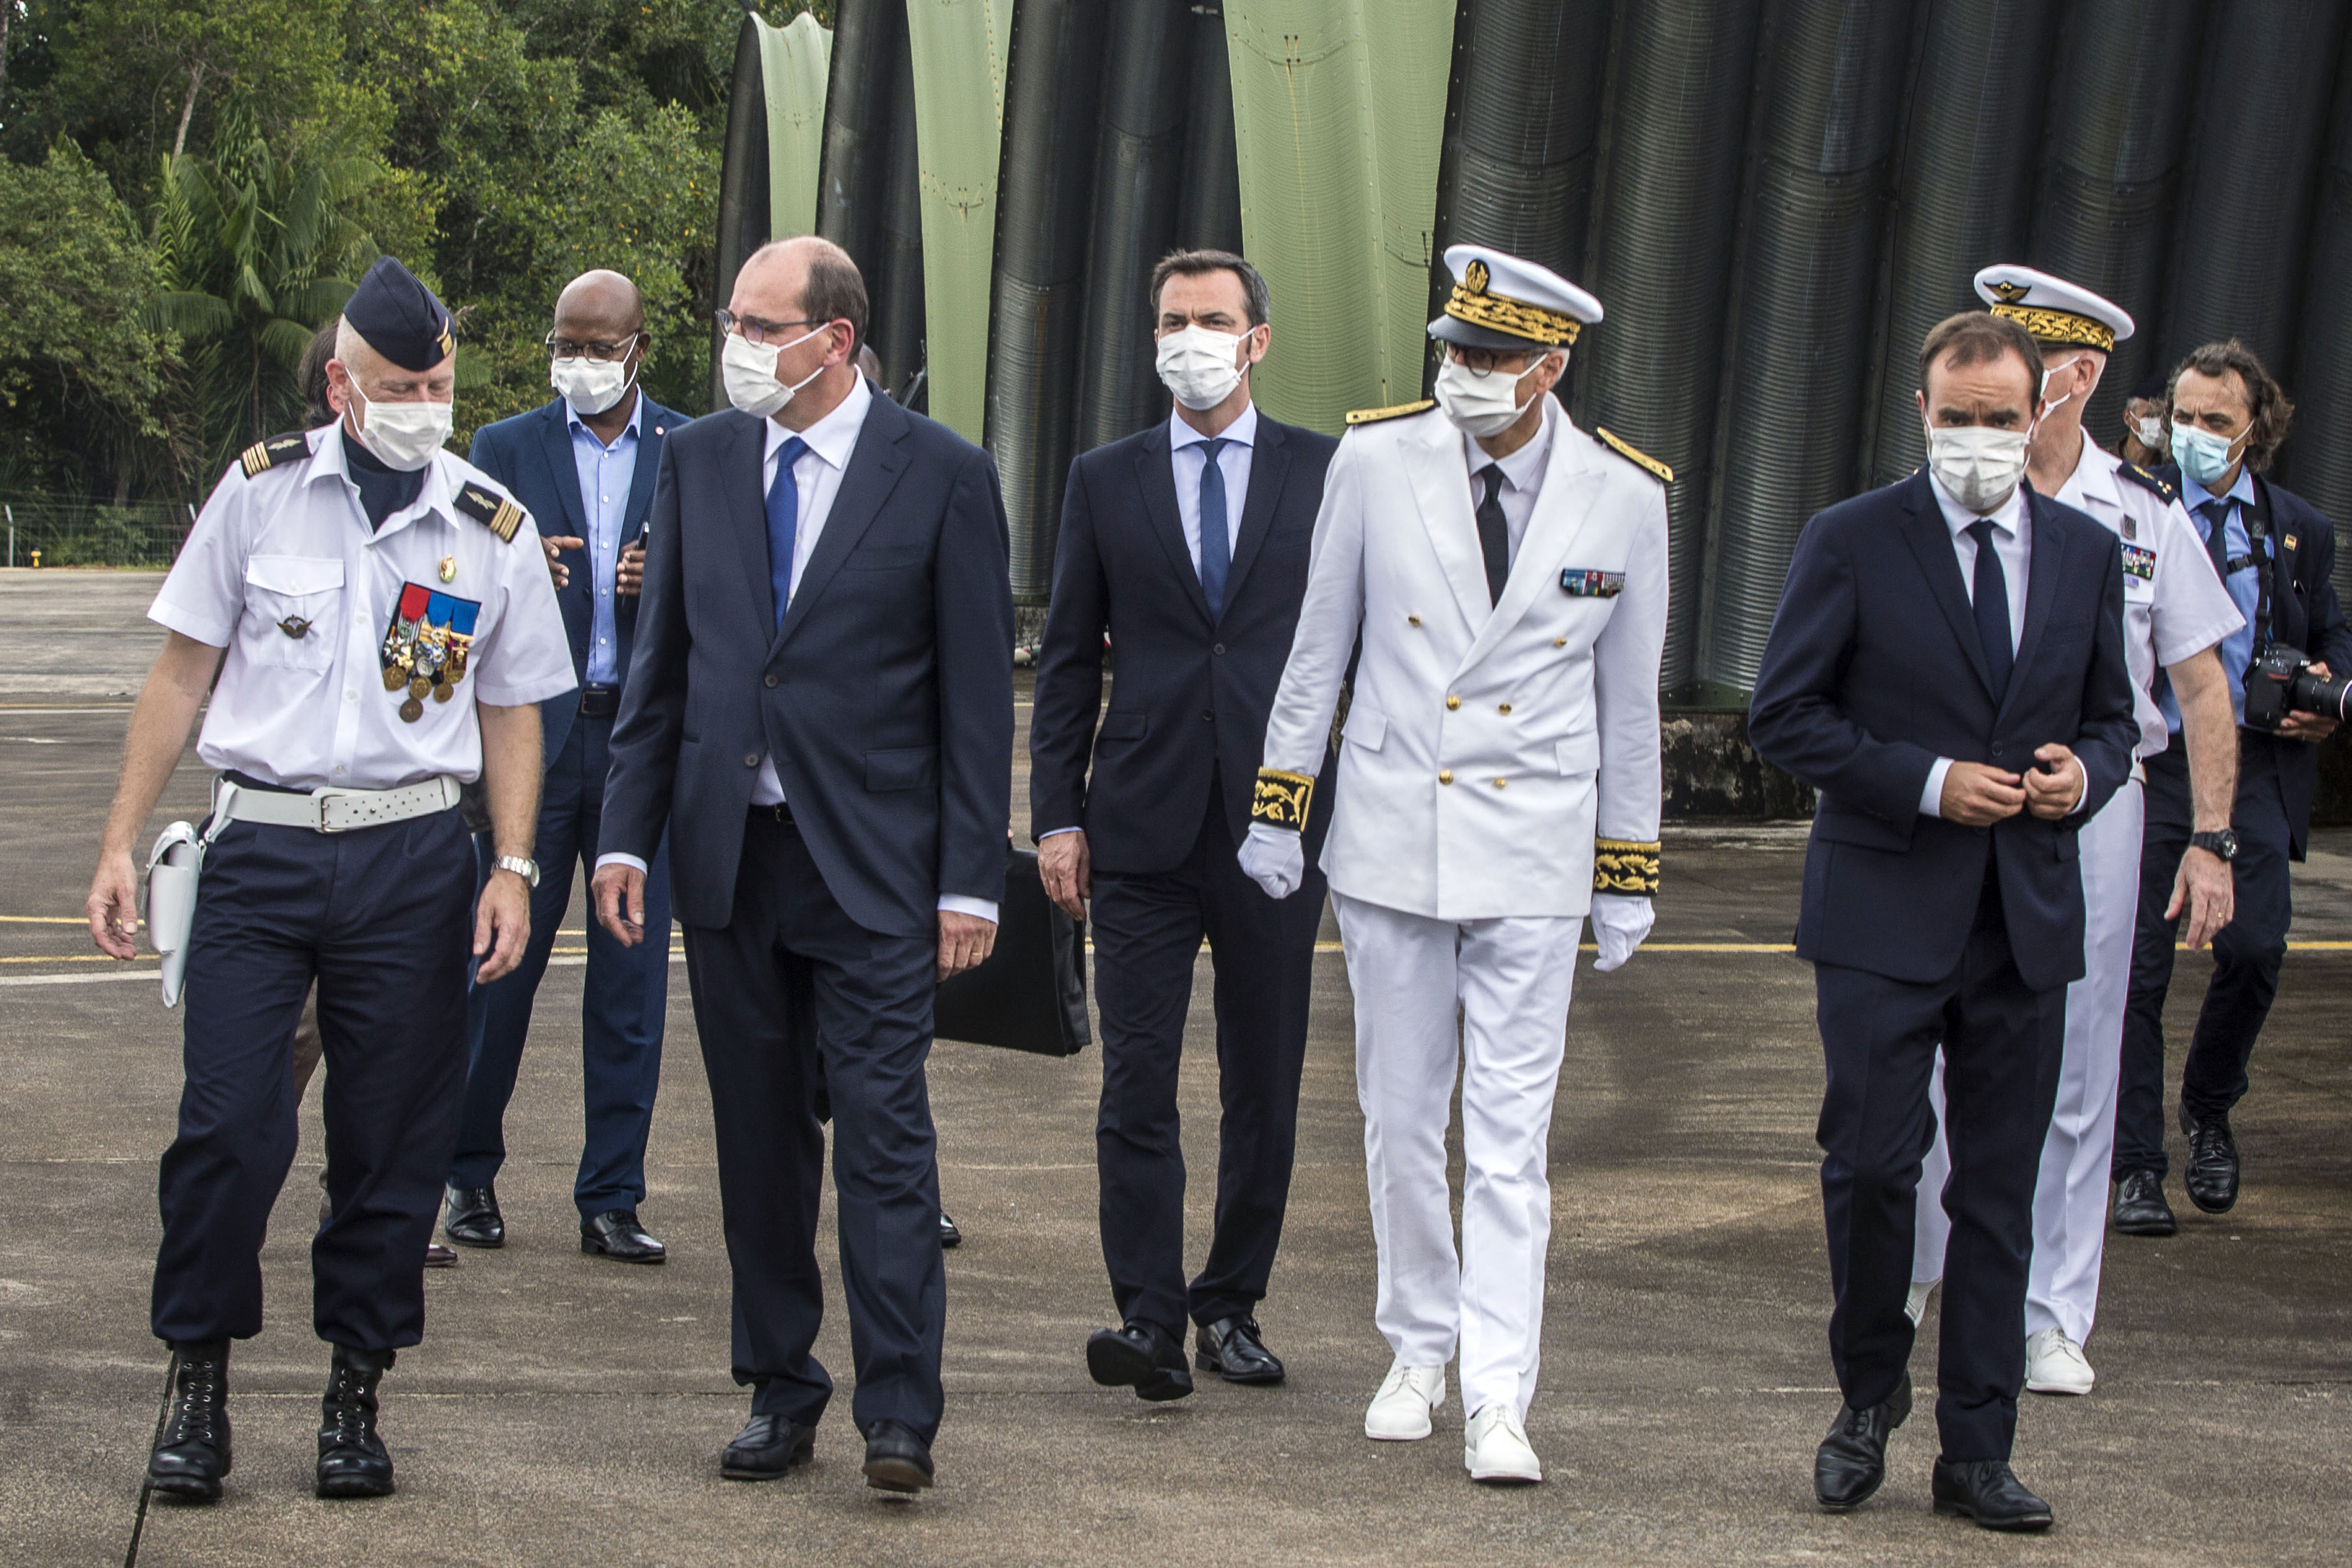 France's Prime Minister Jean Castex, center left, arrives with French Overseas Minister Sebastien Lecornu, right, and France's Health Minister, Olivier Veran, center, at the Matoury Air Base 367, near Cayenne, French Guiana, Sunday, July 12, 2020. As virus numbers soar in French Guiana, France's new prime minister traveled Sunday to the South American territory and promised not to ignore its suffering. (AP Photo/Pierre-Olivier Jay)